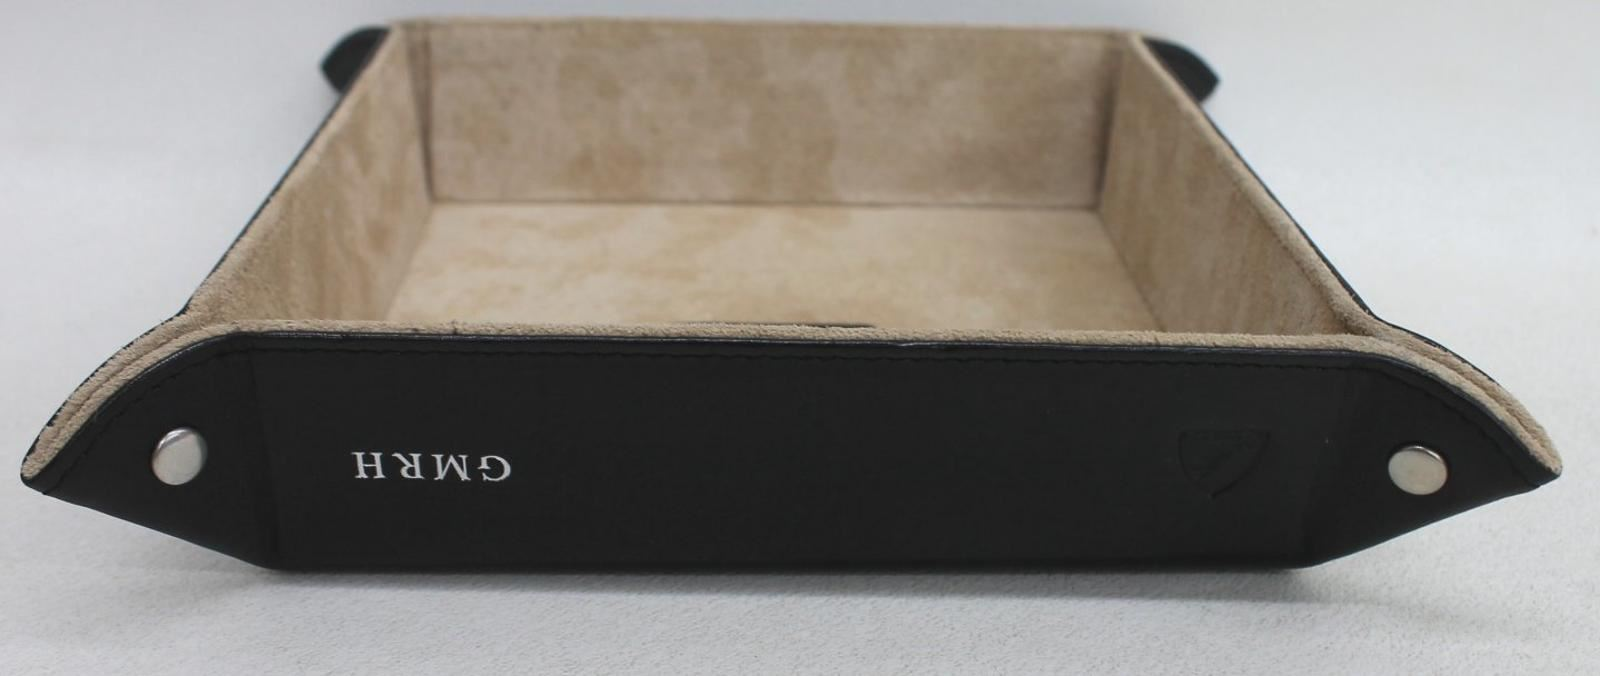 ASPINAL-OF-LONDON-Smooth-Black-Leather-Medium-Tidy-Tray-Embossed-GMRH-NEW